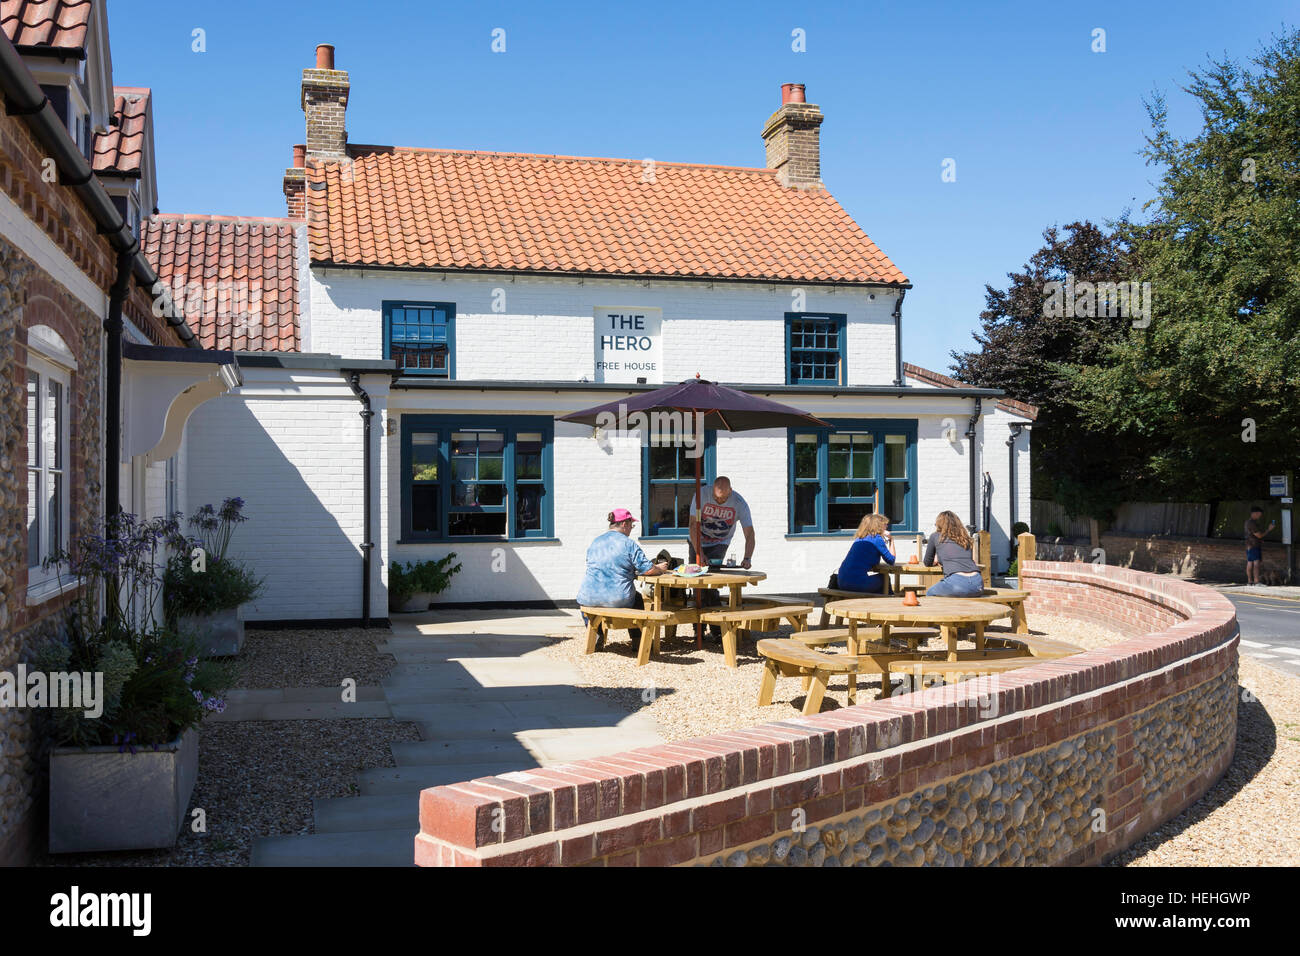 Outdoor terrace at The Hero Pub, Wells Road, Burnham Overy Staithe, Norfolk, England, United Kingdom - Stock Image